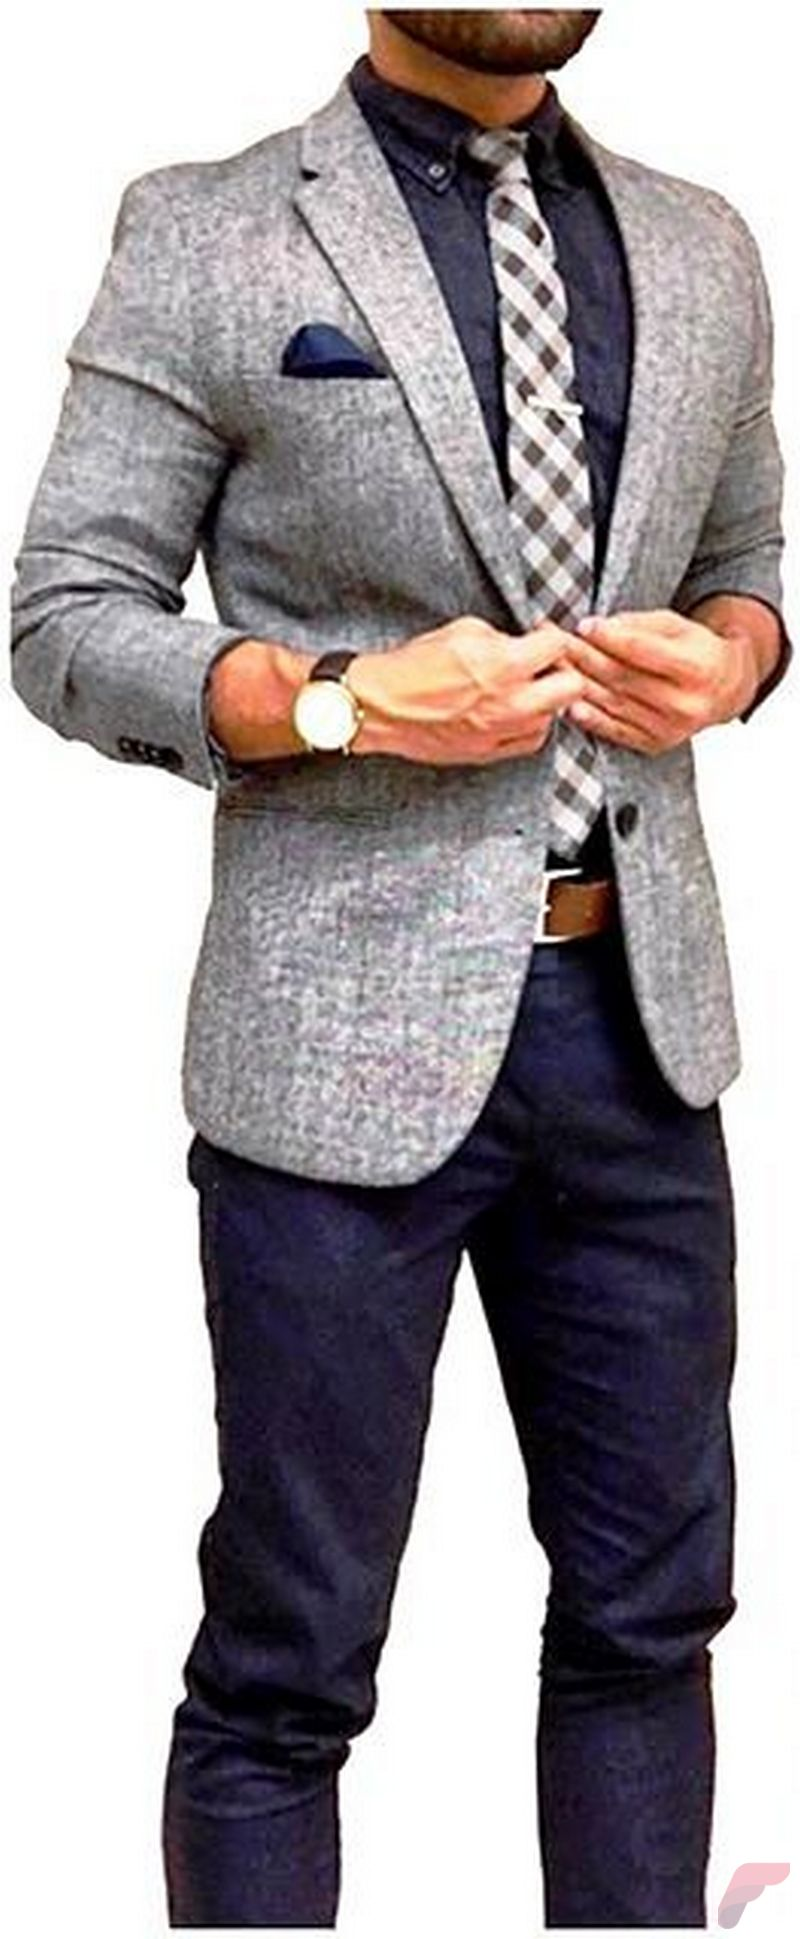 Men sport coat with jeans (147)